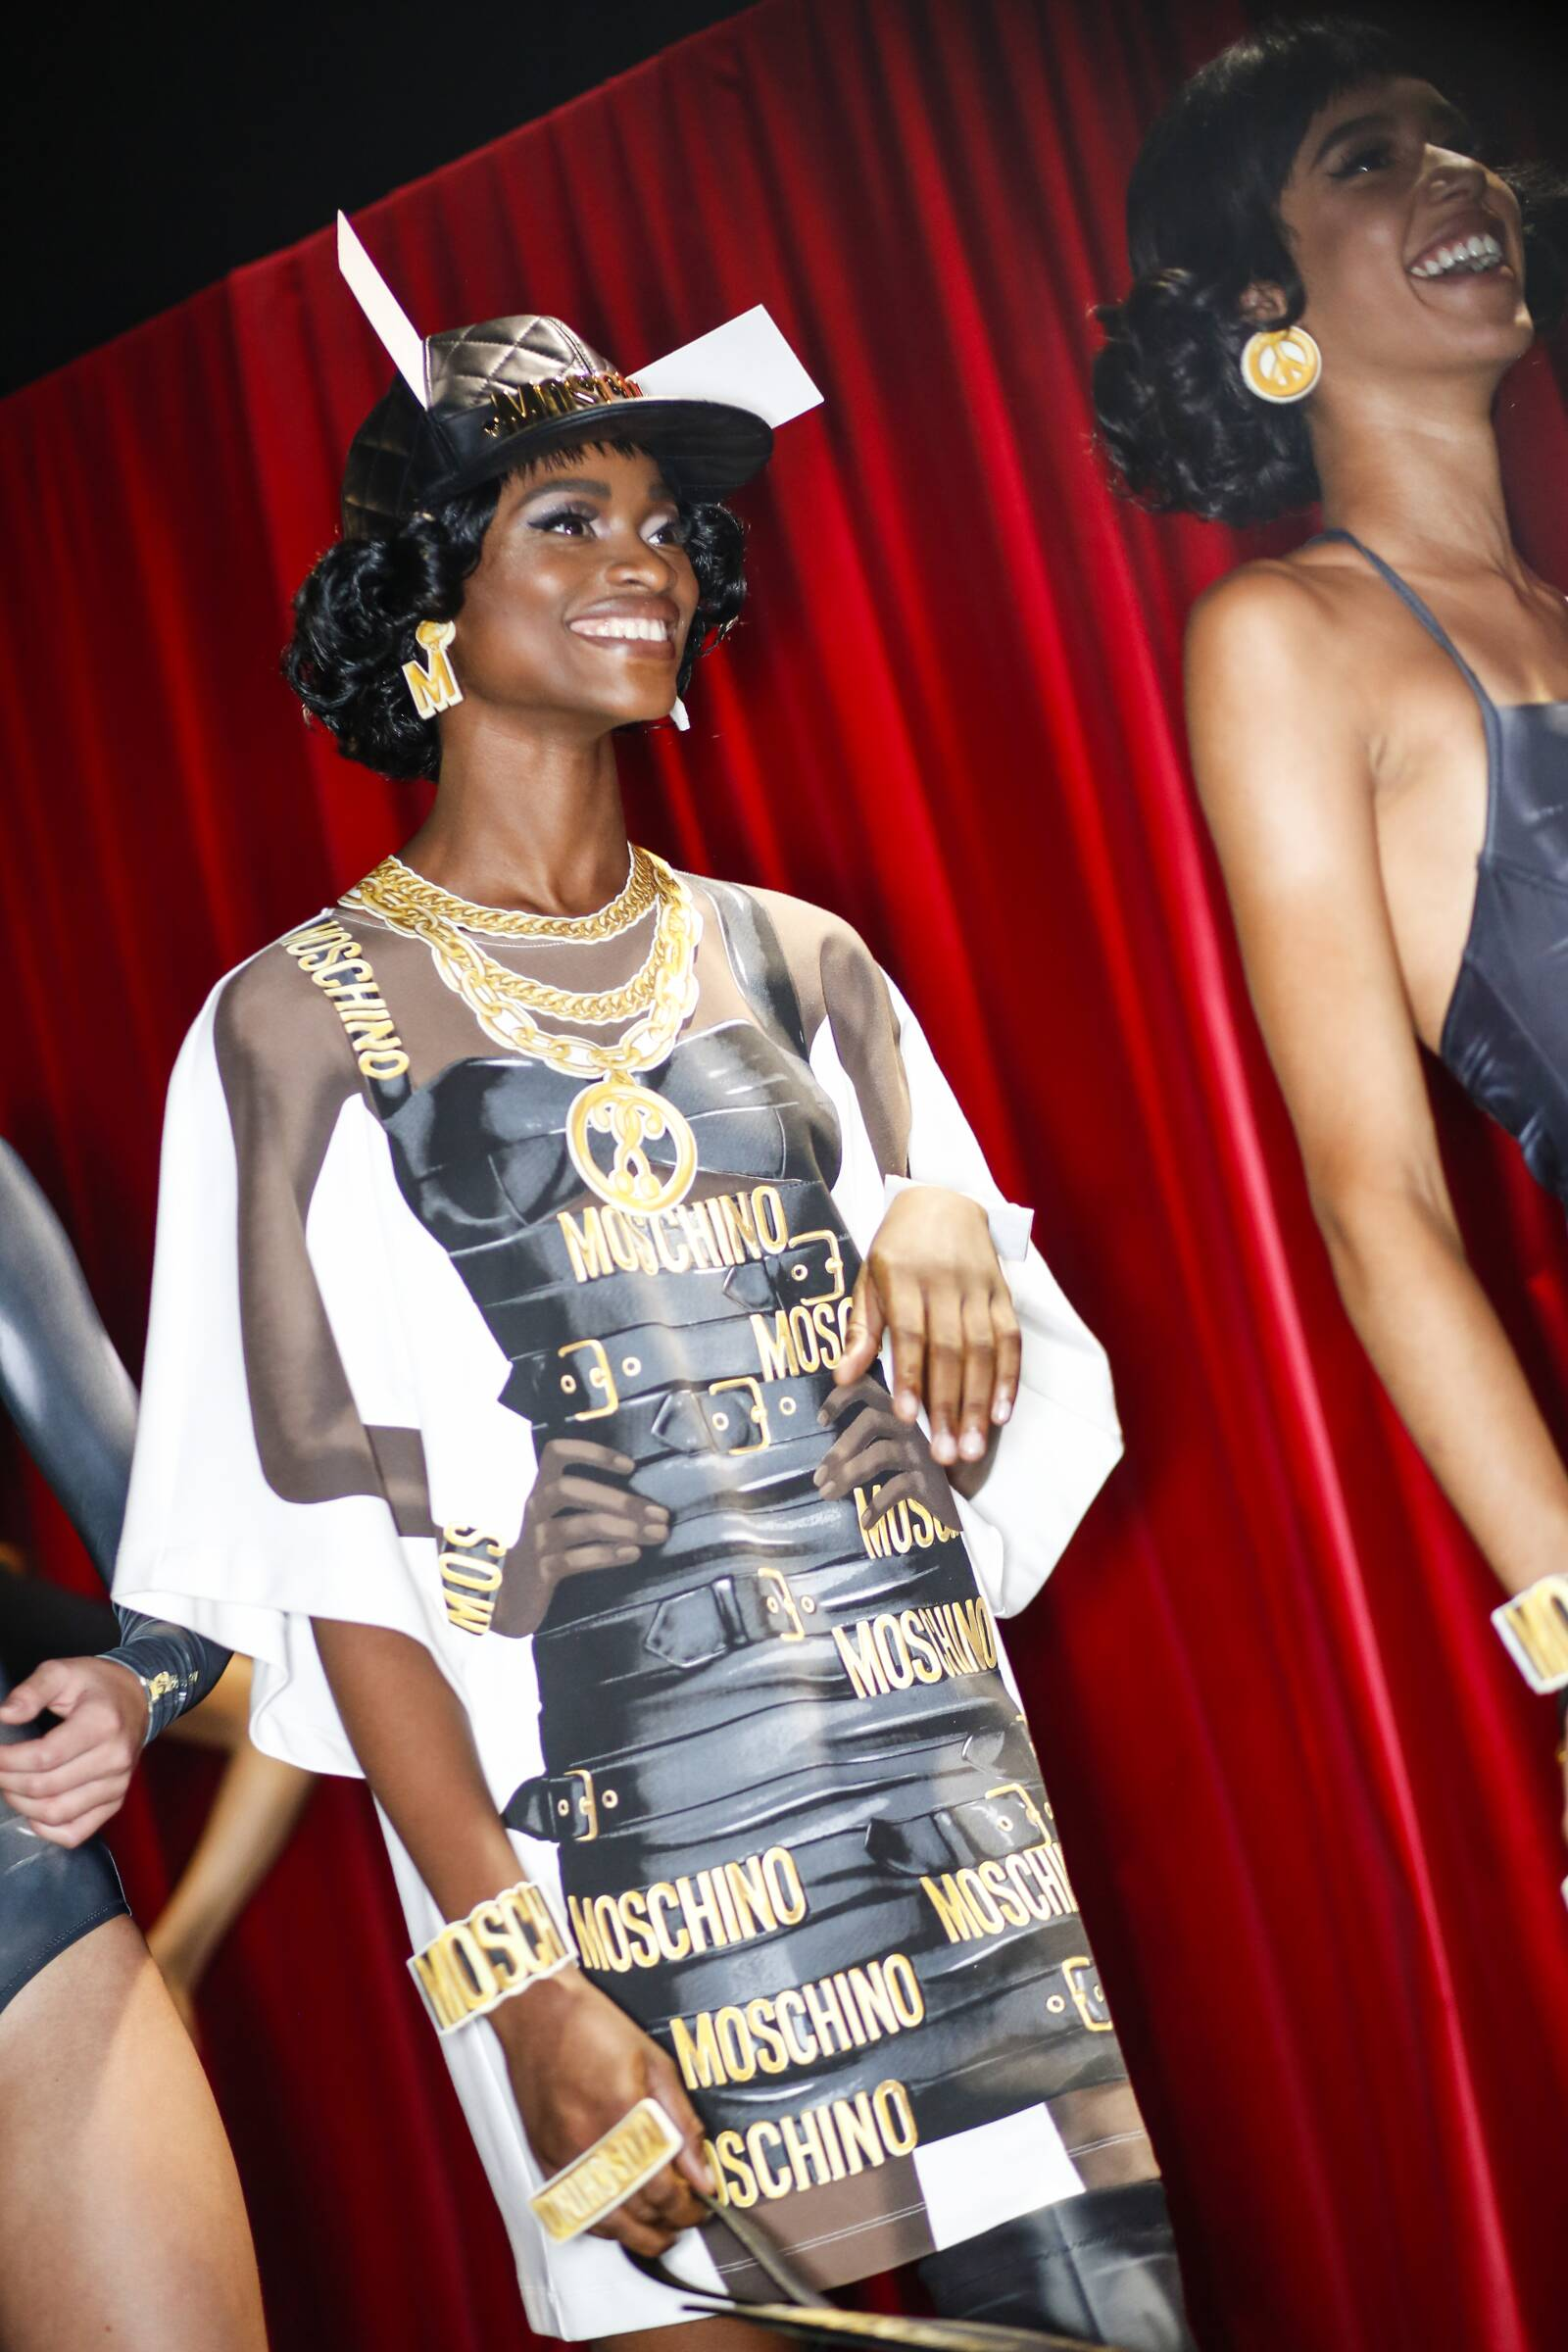 Backstage Moschino Fashion Show Woman Model Milan Fashion Week